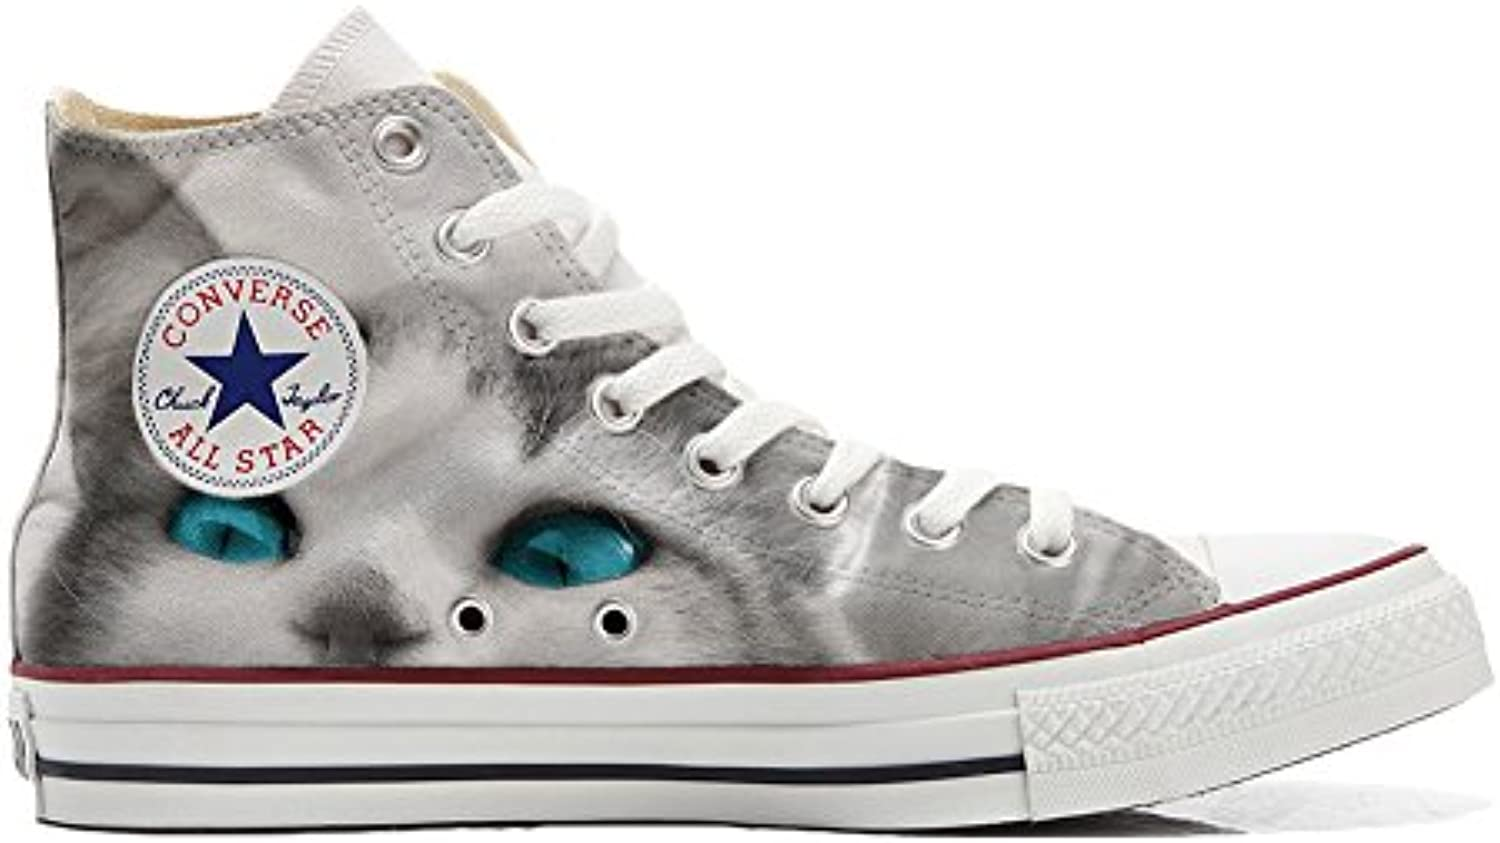 Shoes Custom Converse All Star  personalisierte Schuhe (Handwerk Produkt) White cat with blue eyes